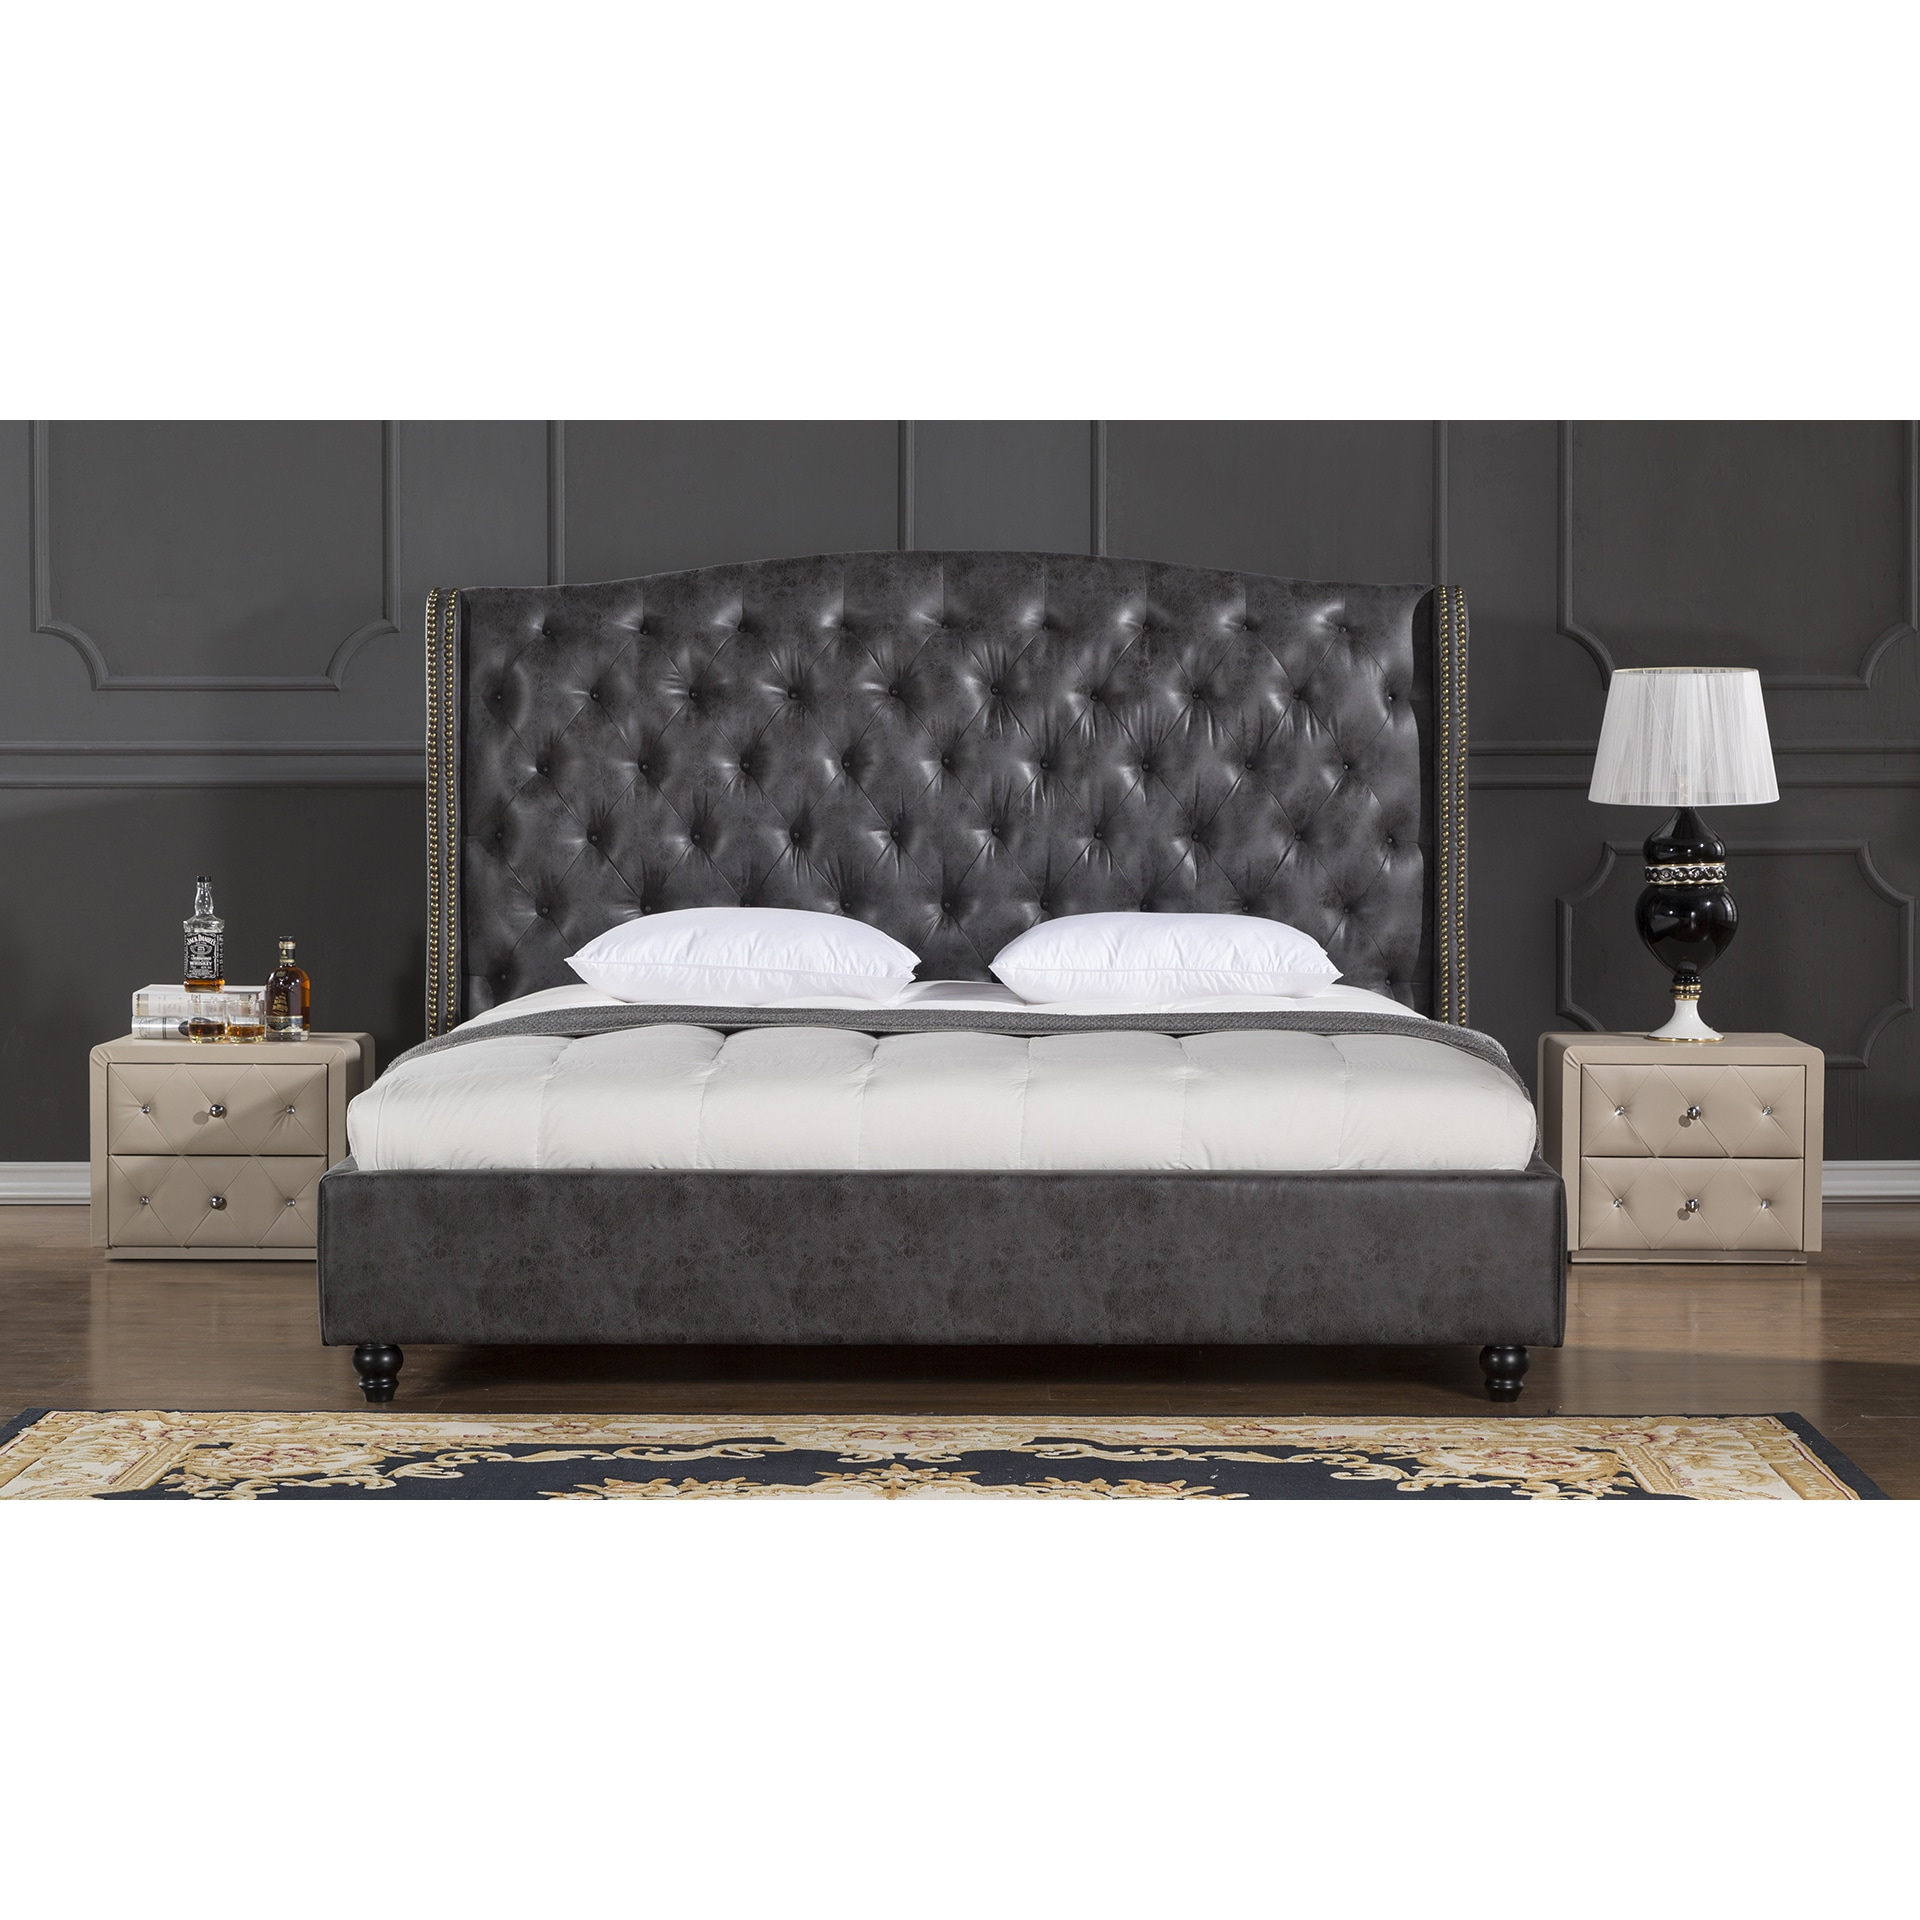 Leather Bed Frame Buy Leather Beds Online At Overstock Our Best Bedroom Furniture